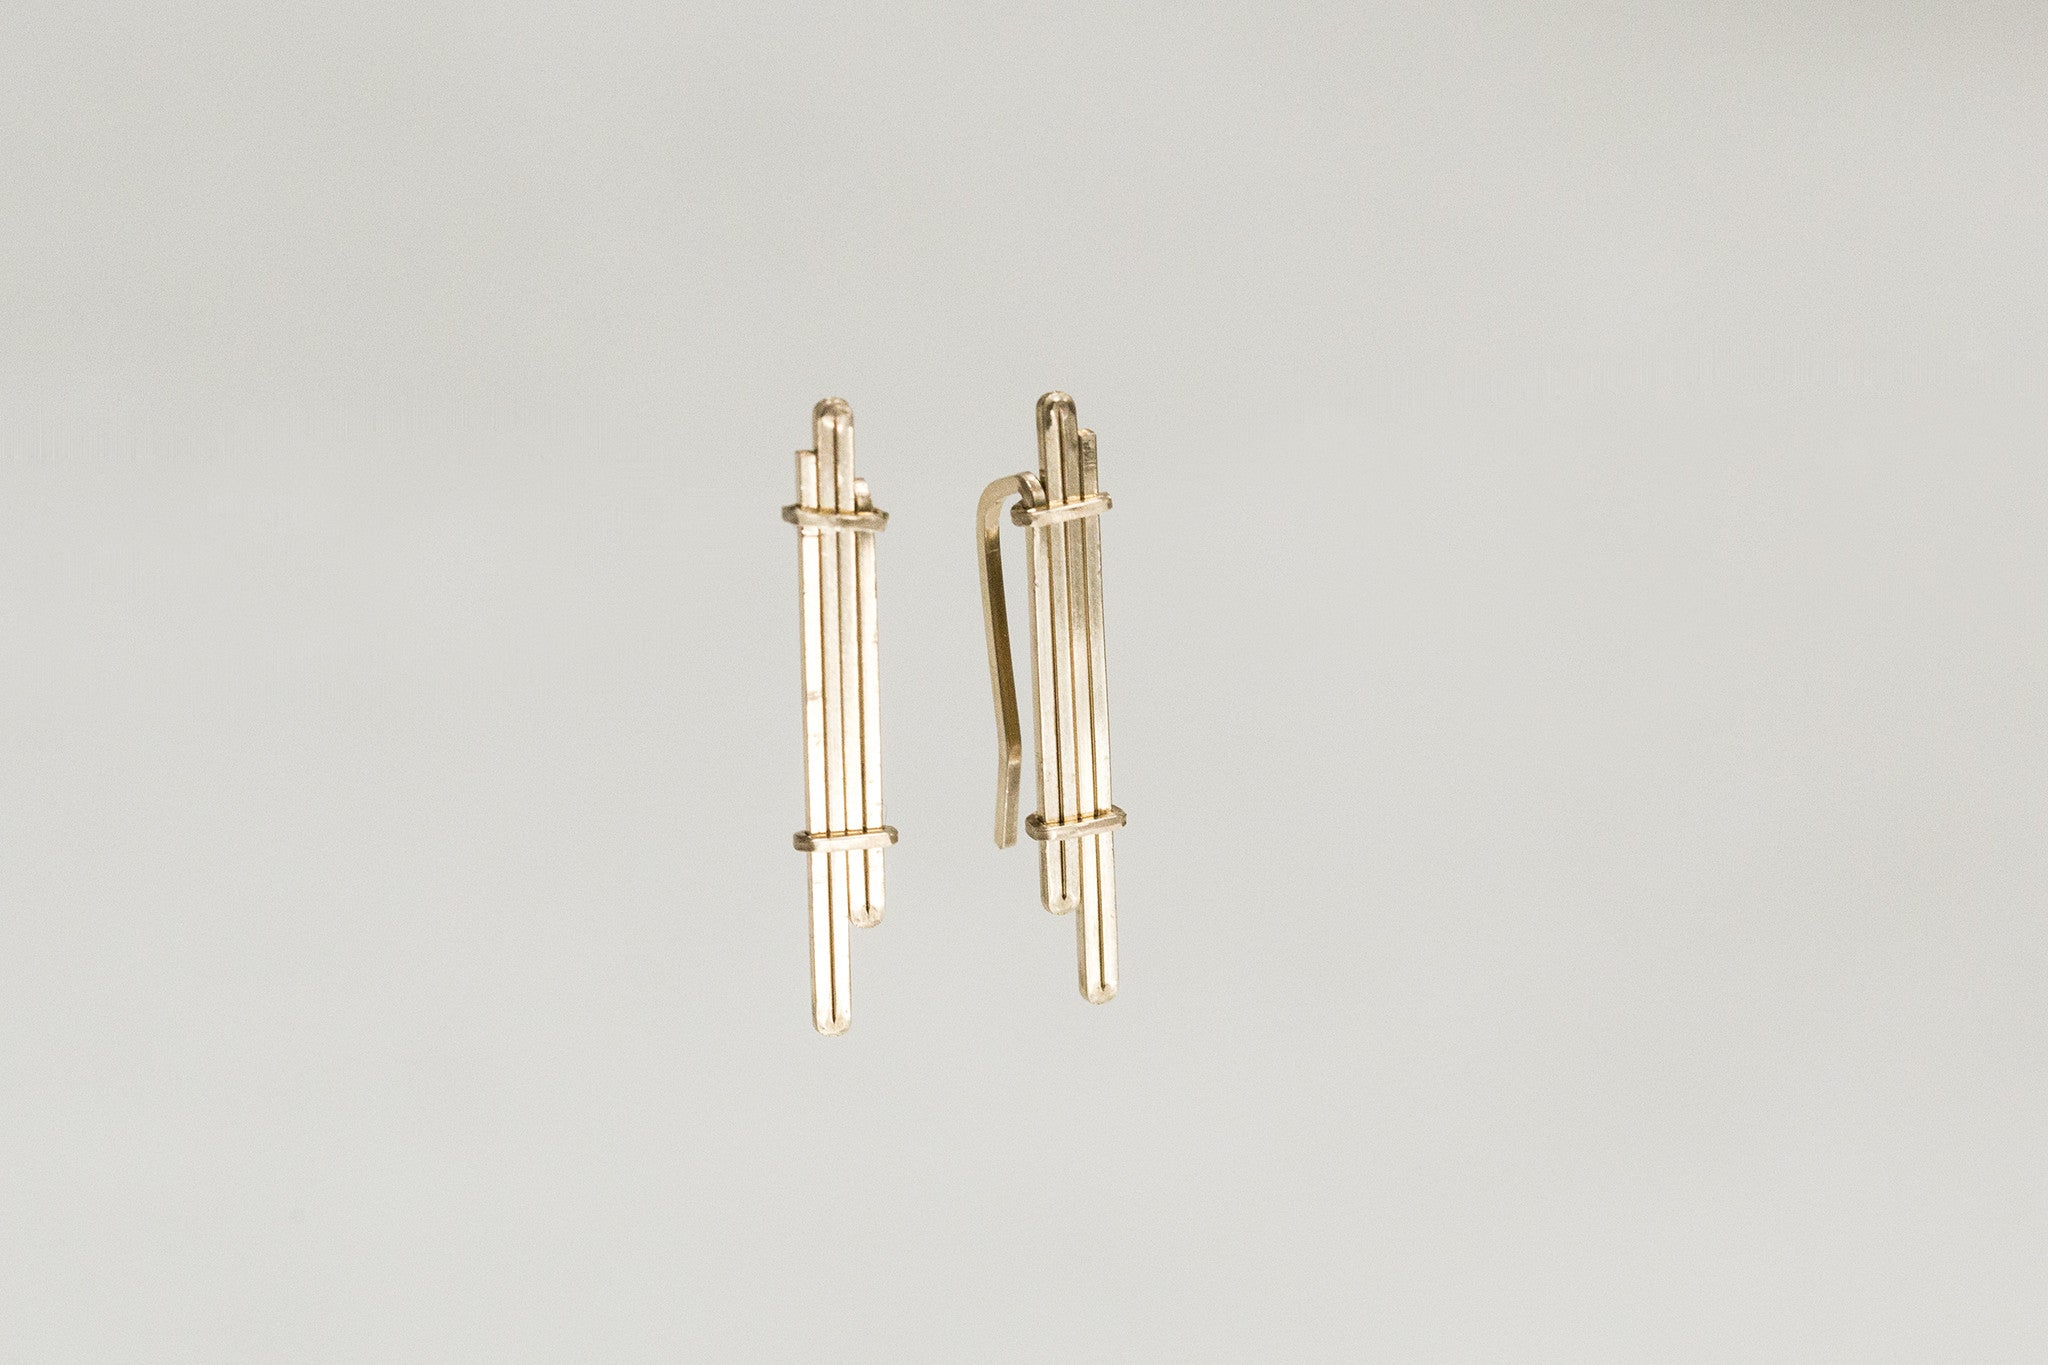 very popular and original ear cuffs with a subtle apperance of 14ct gold